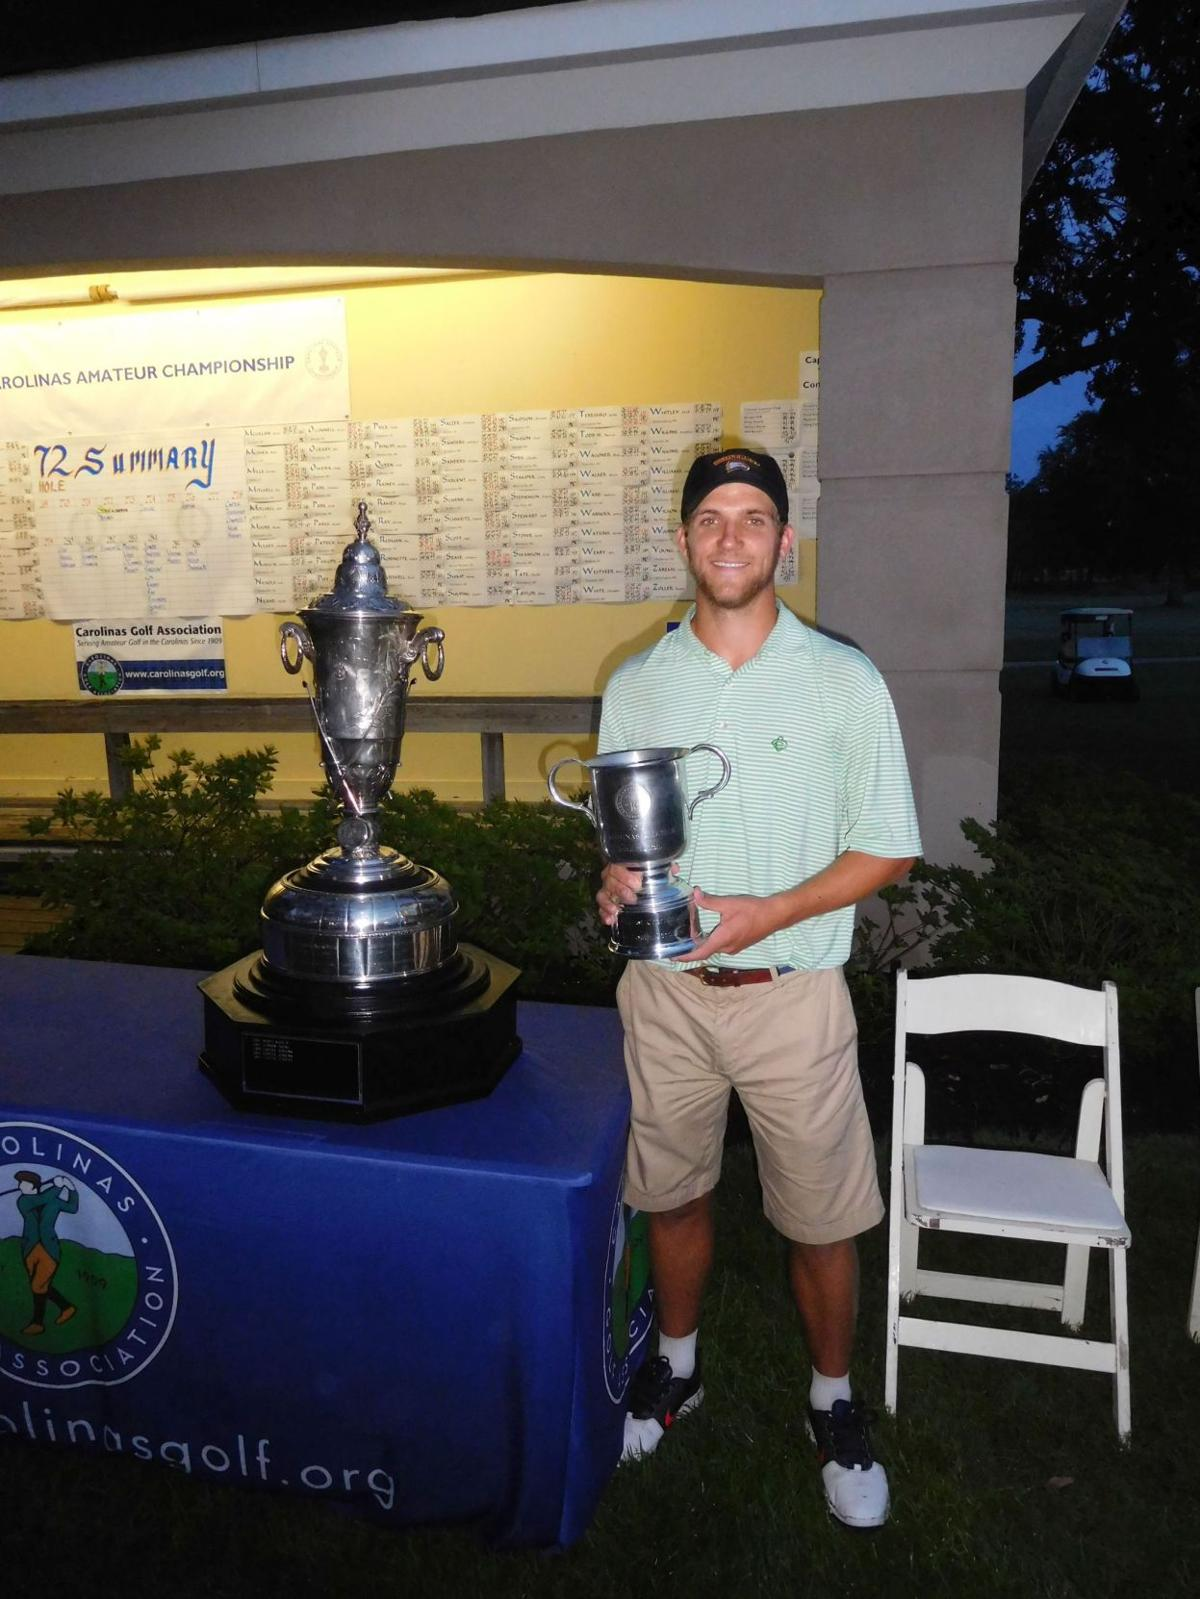 Mount Pleasant's Sease survives 4-hole playoff to win Carolinas Amateur